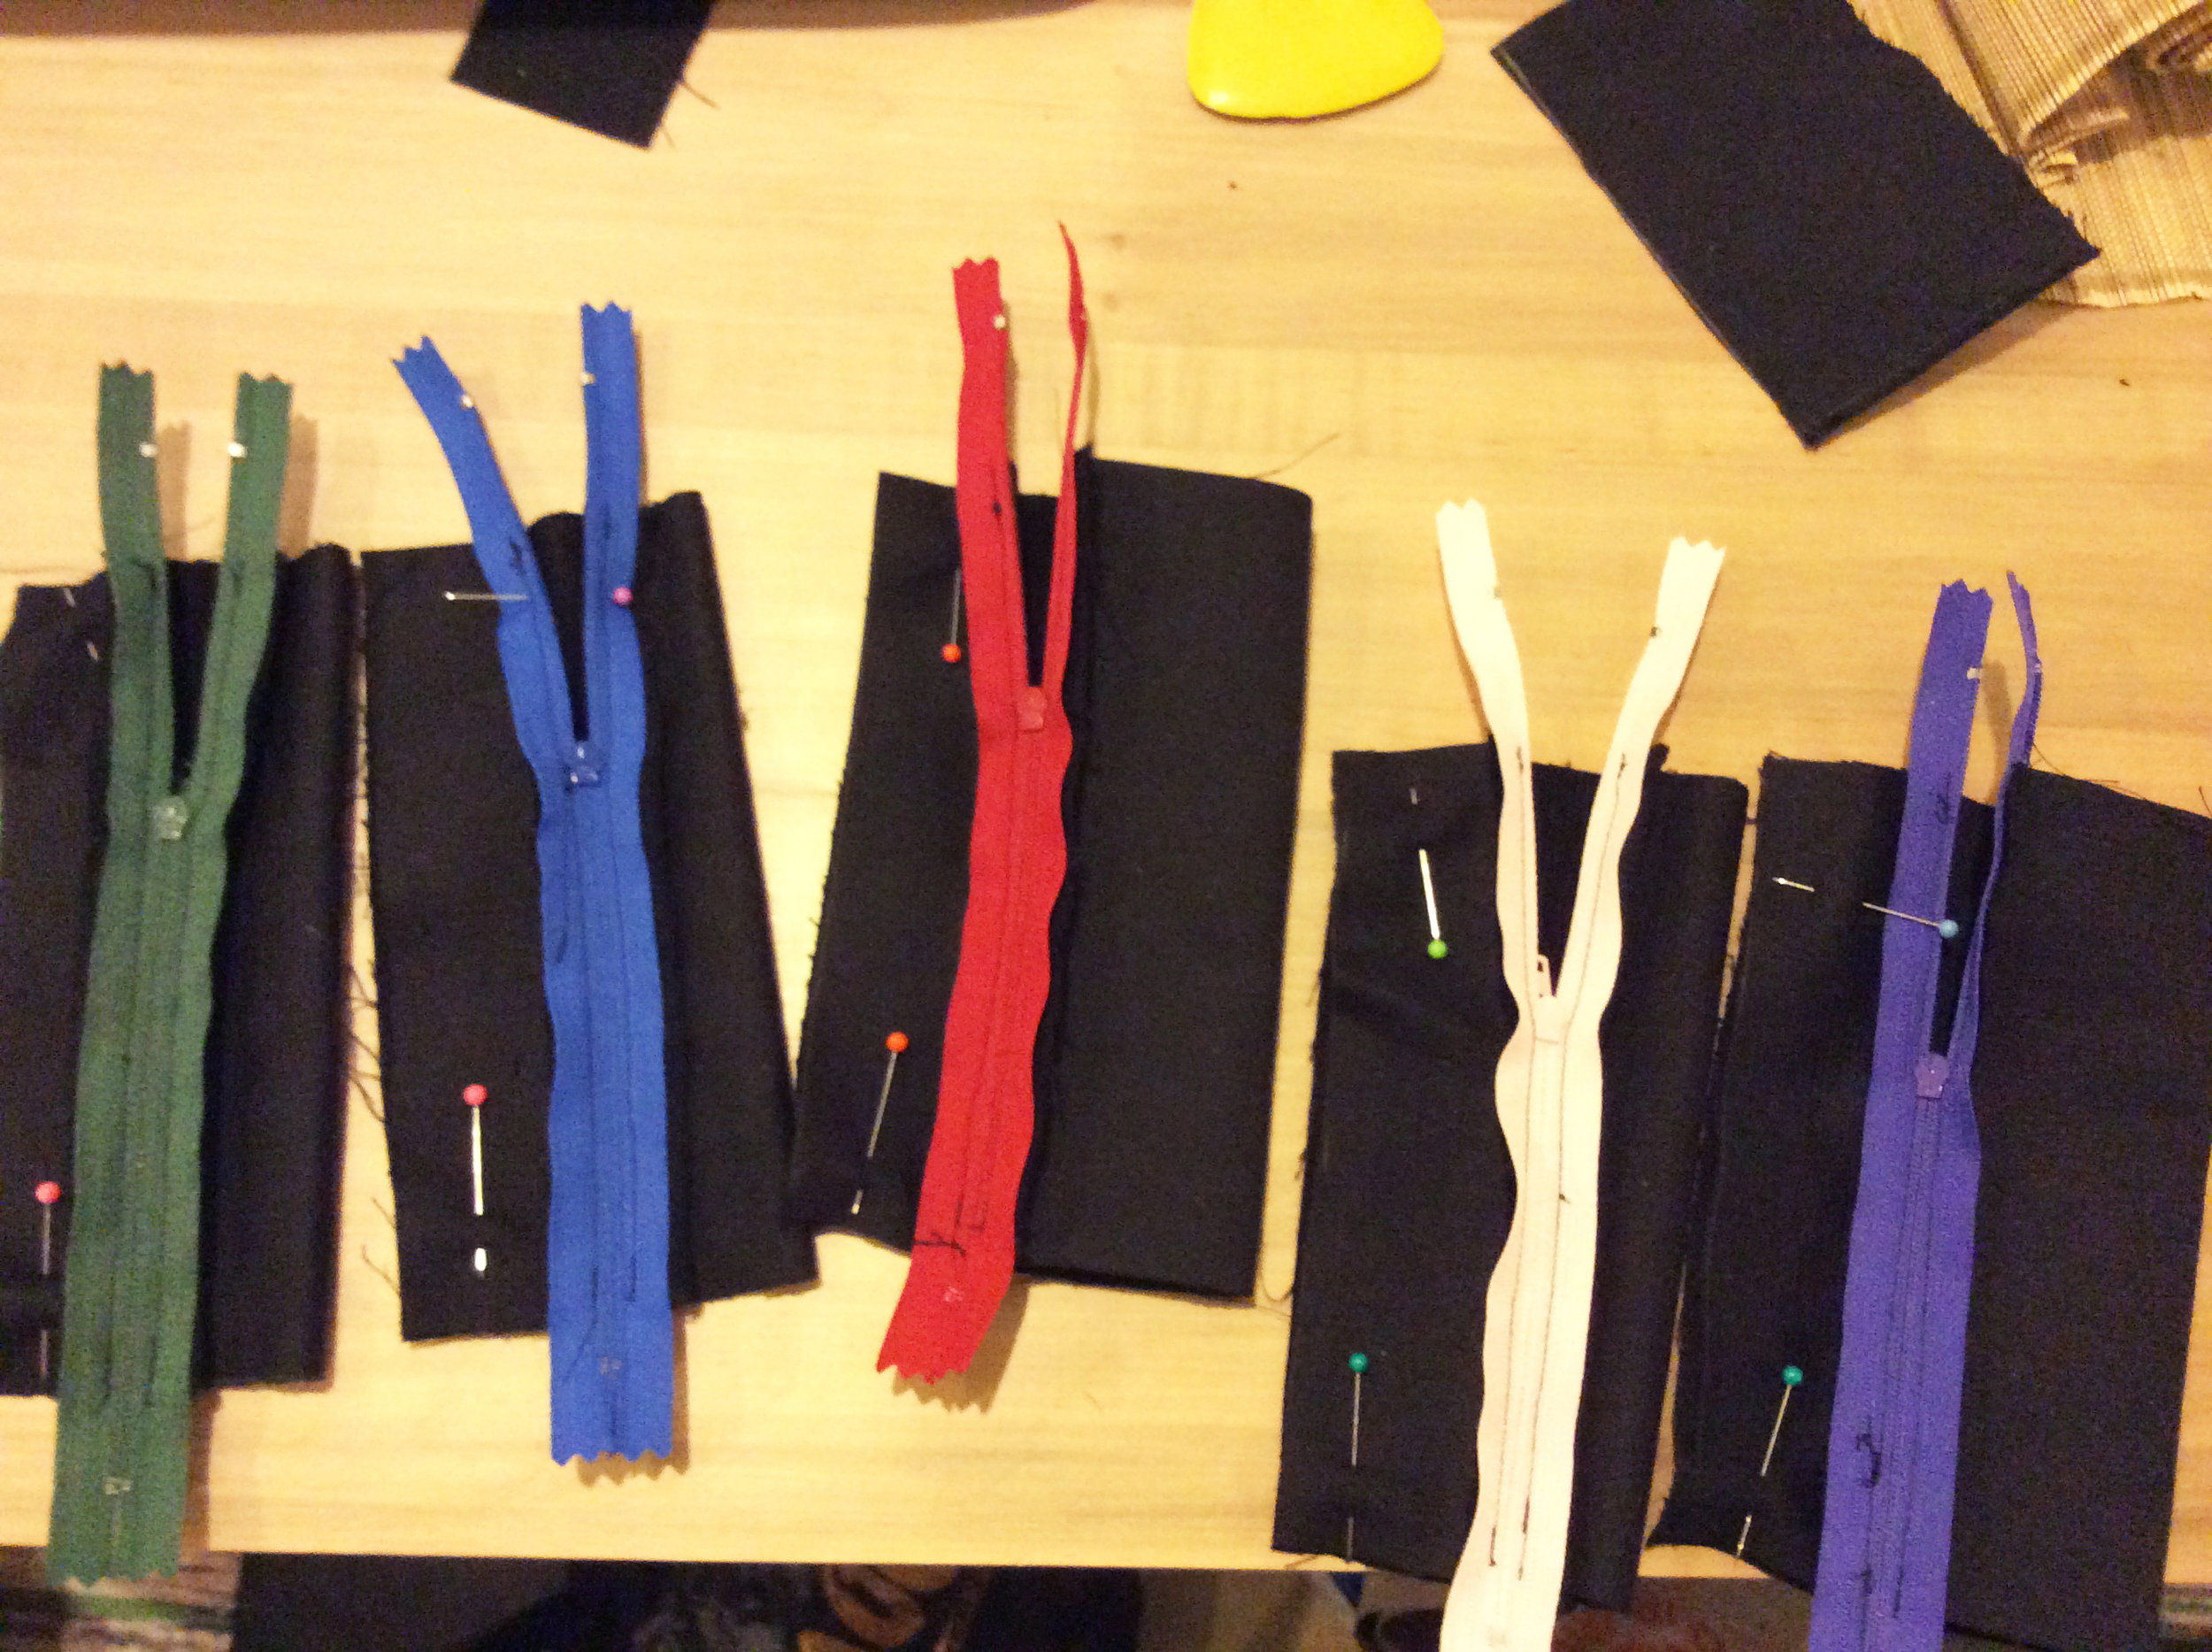 Fold the project in half, right side in, with the zippers open far enough to turn them right side out after stitching.